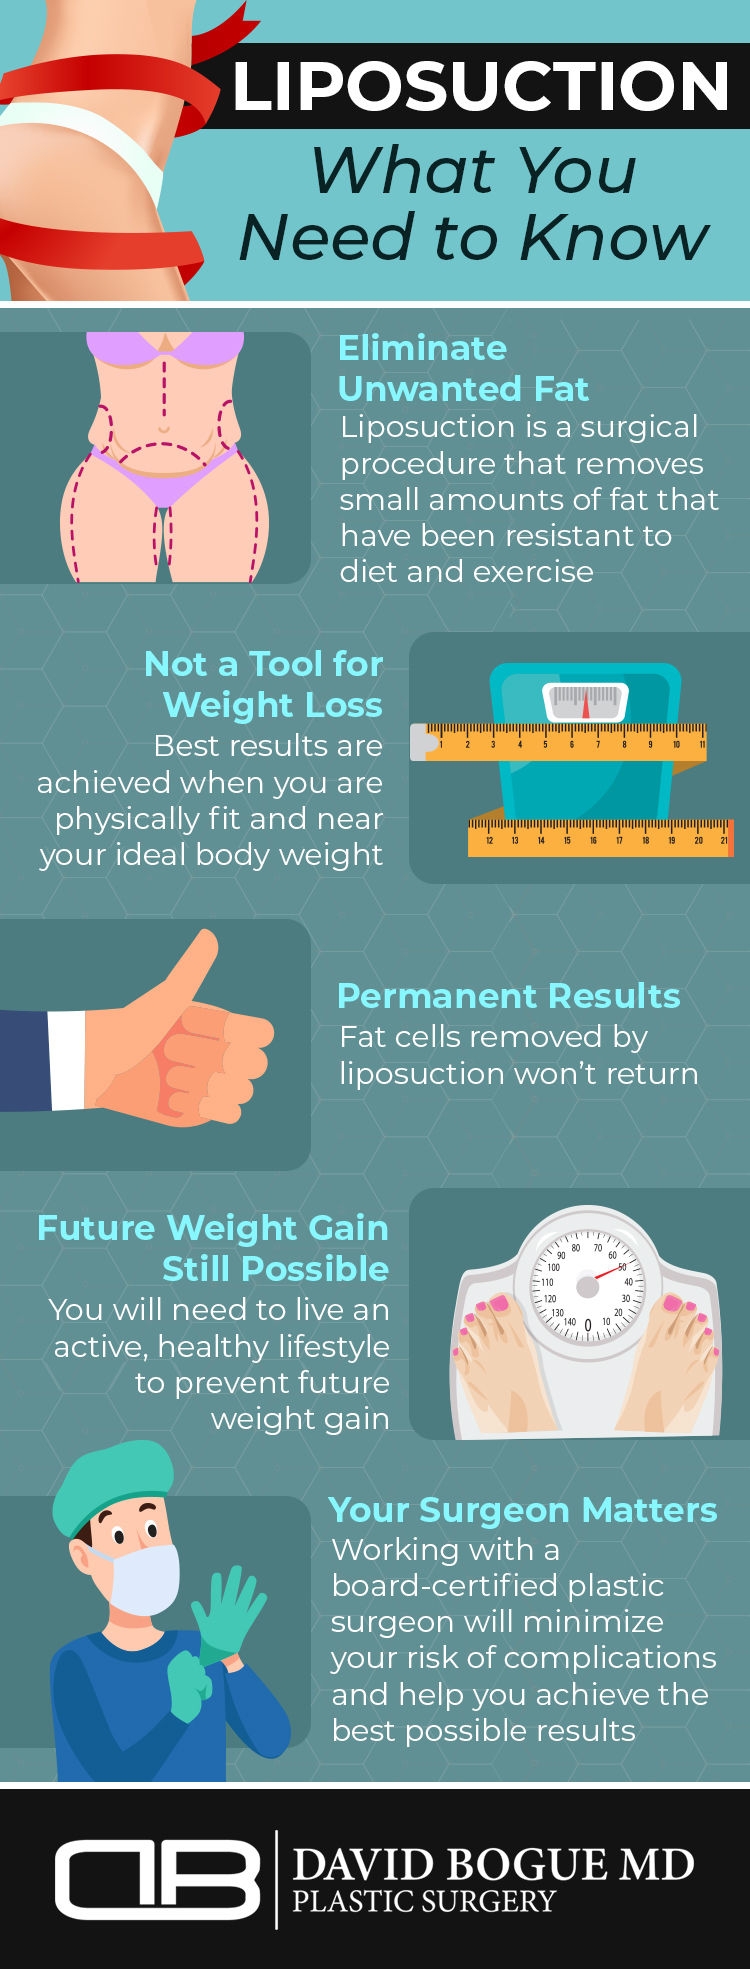 infographic highlighting important facts about liposuction